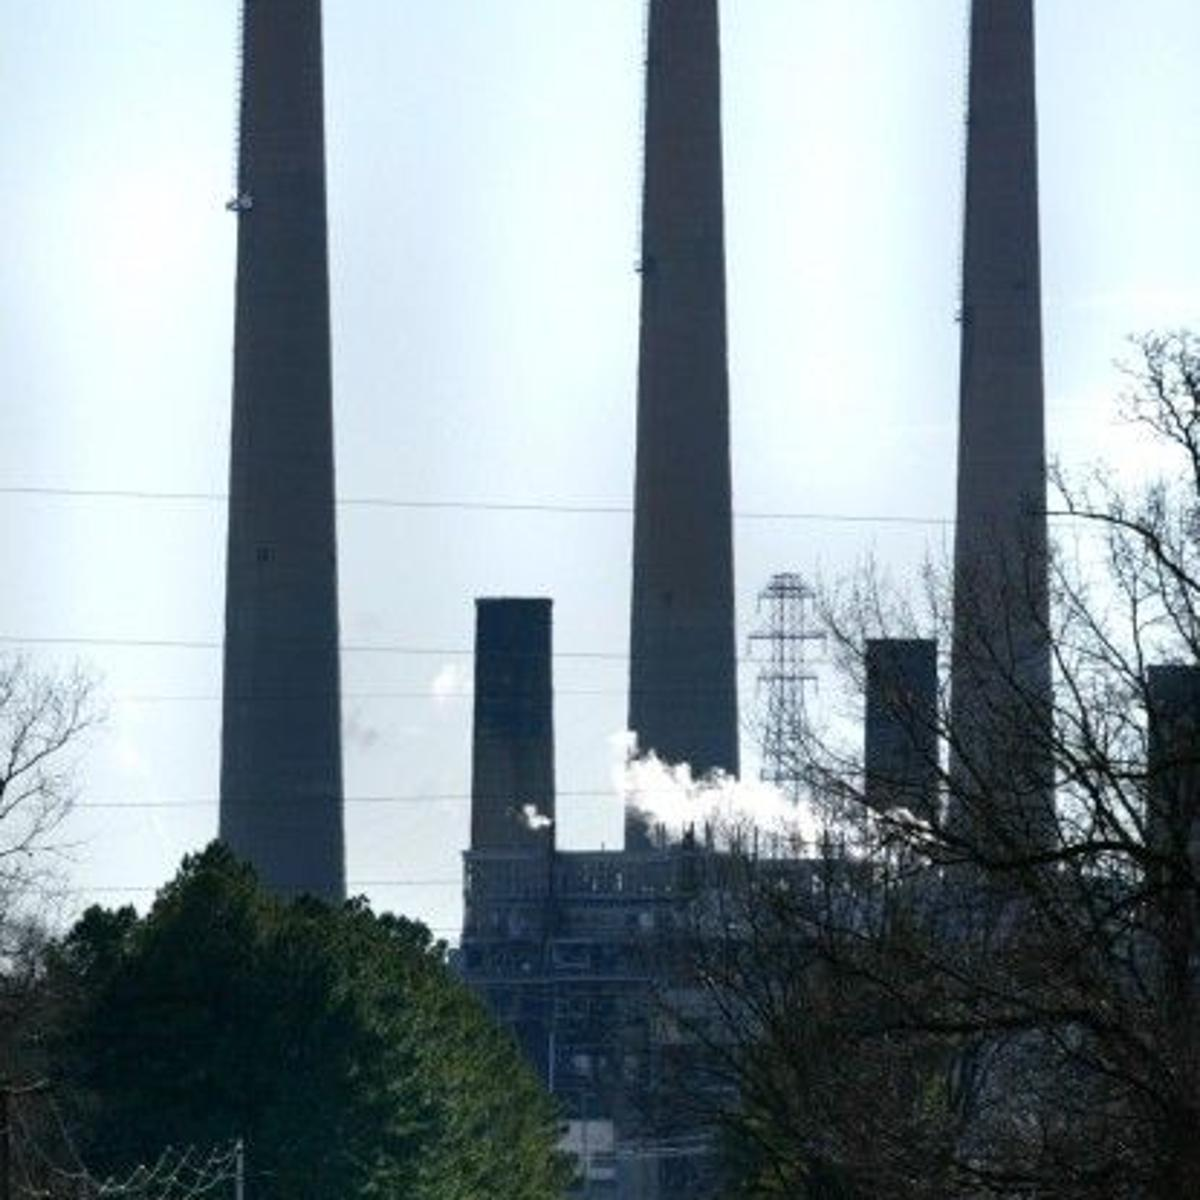 Air pollution waiver may decide fate of Illinois coal plants